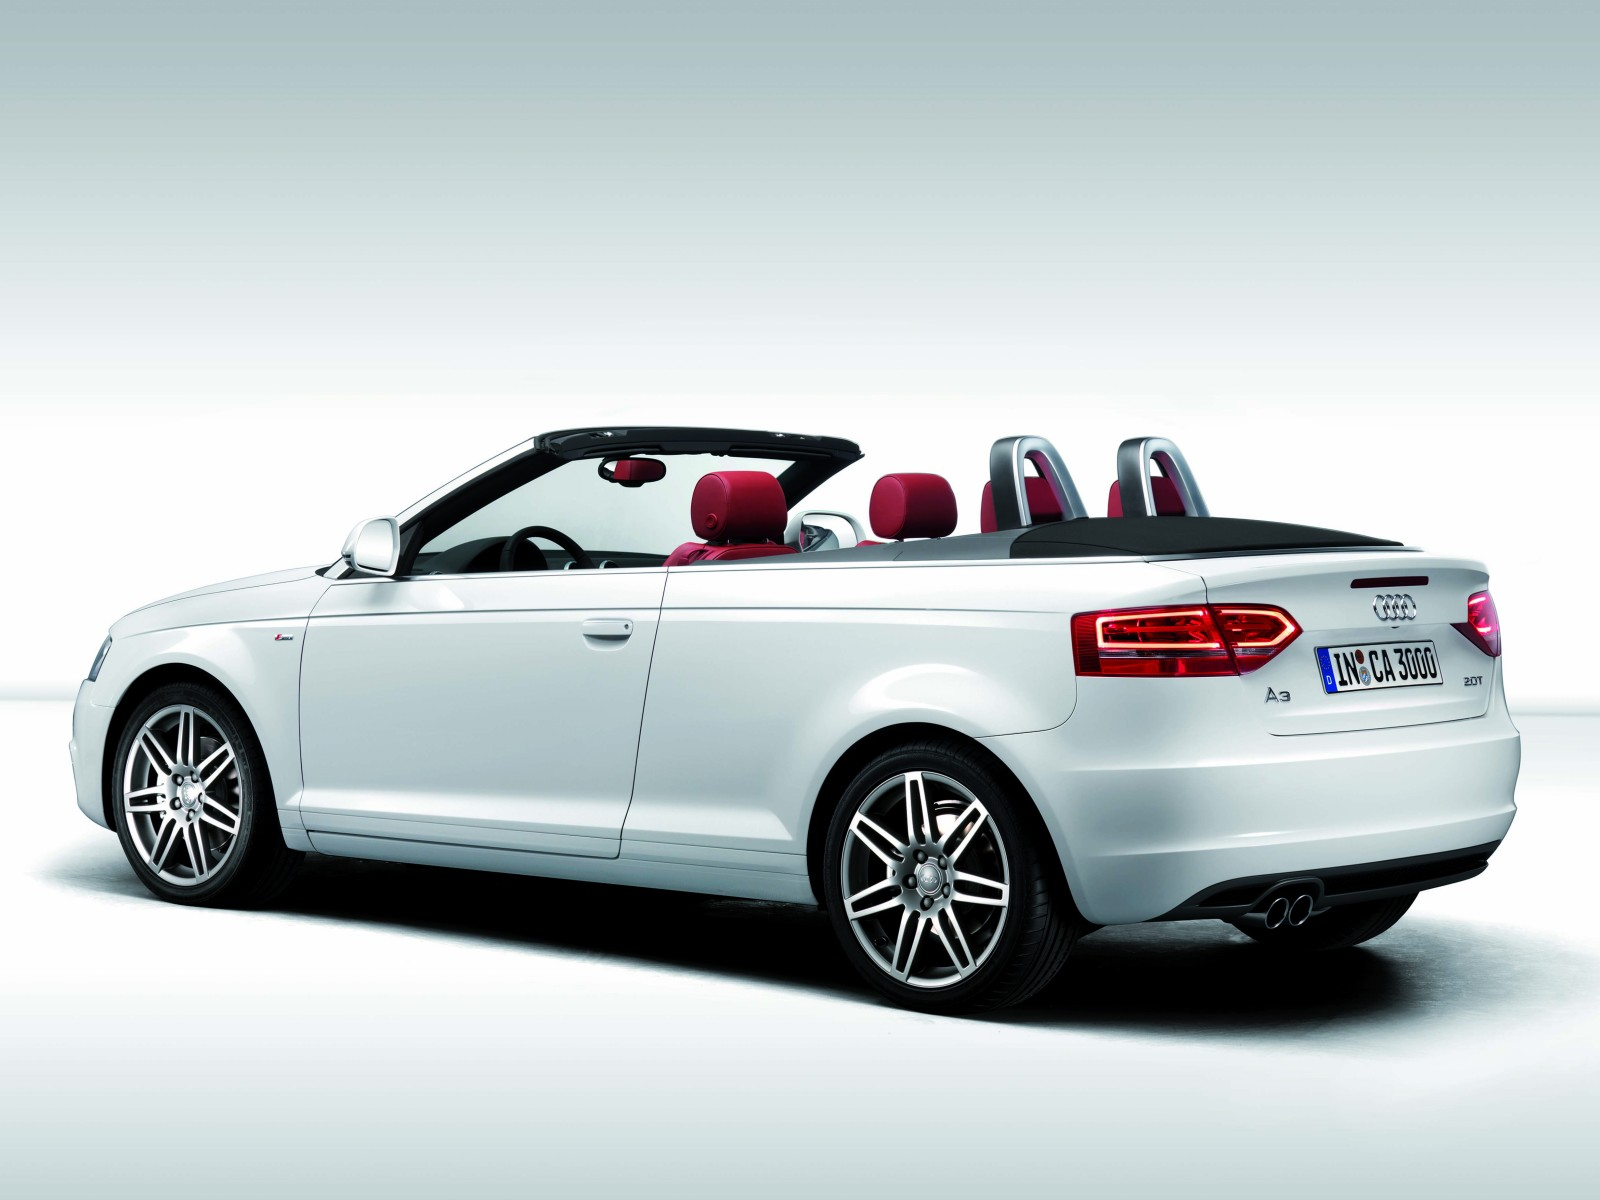 2009 audi a3 cabriolet 2 0 tfsi motor desktop. Black Bedroom Furniture Sets. Home Design Ideas